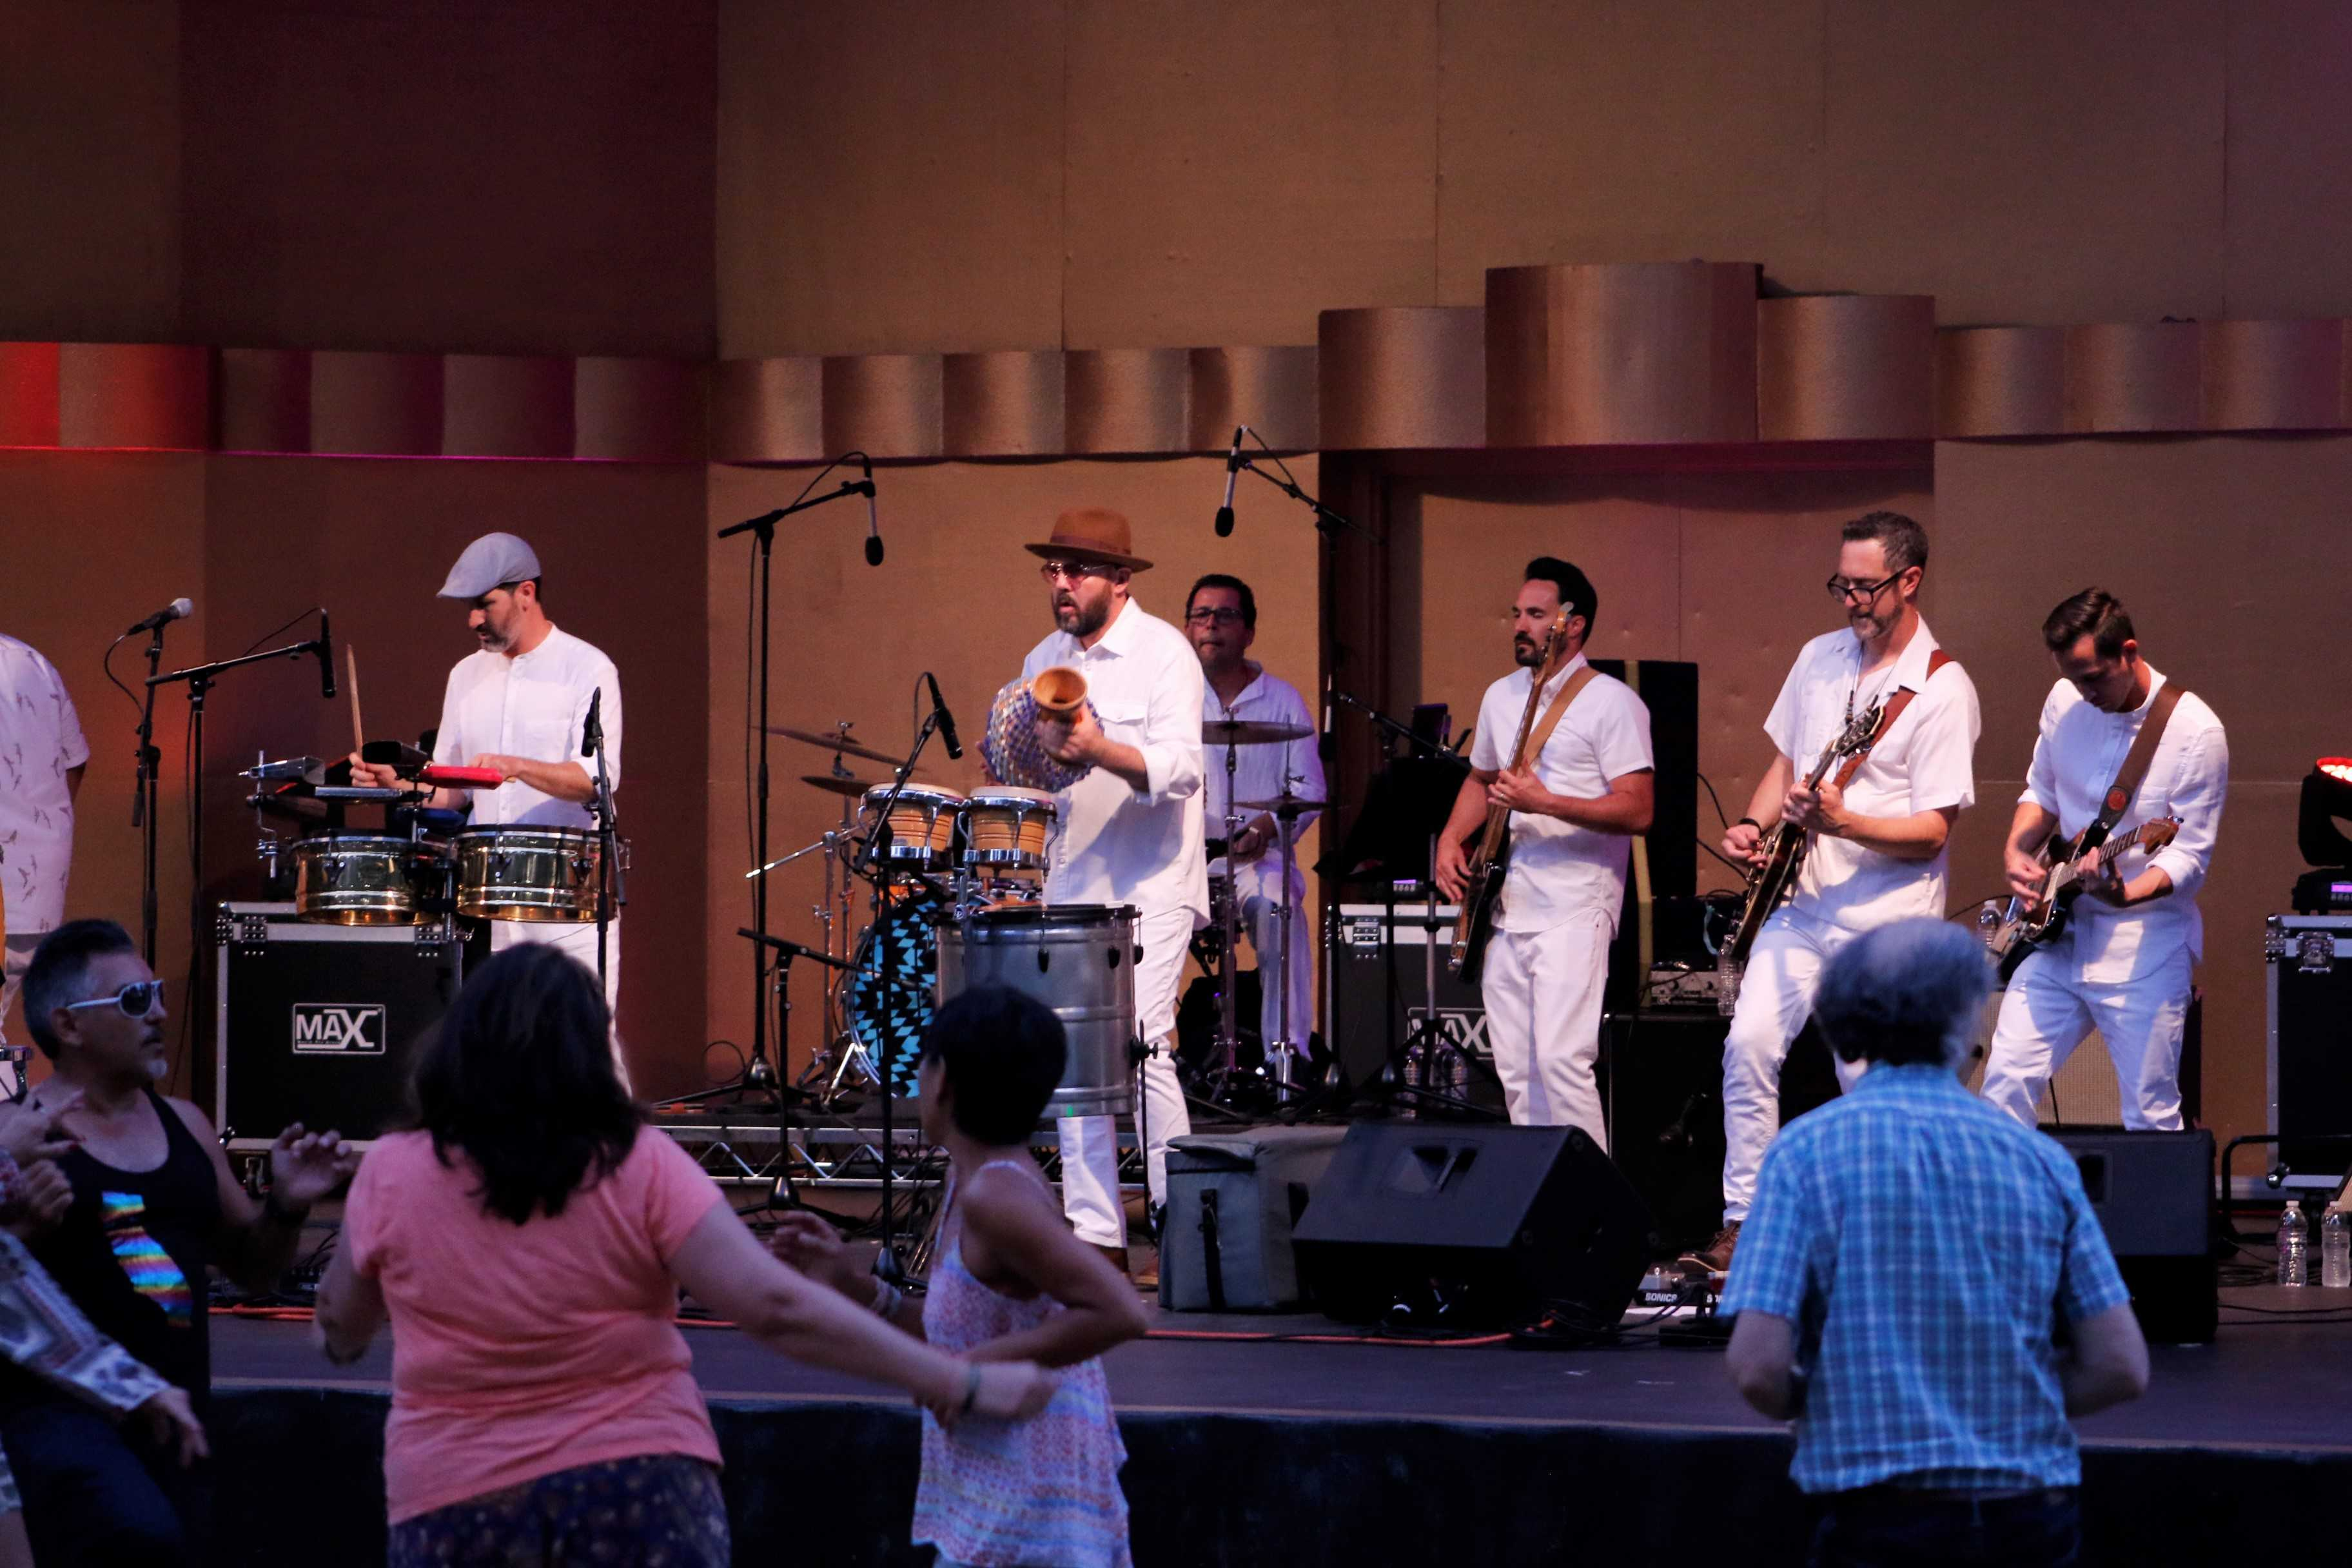 afro/latin funk band, Jungle Fire, performs on stage at The Levitt Pavilion on Saturday, July 22 Photo credit: Ivan Salinas